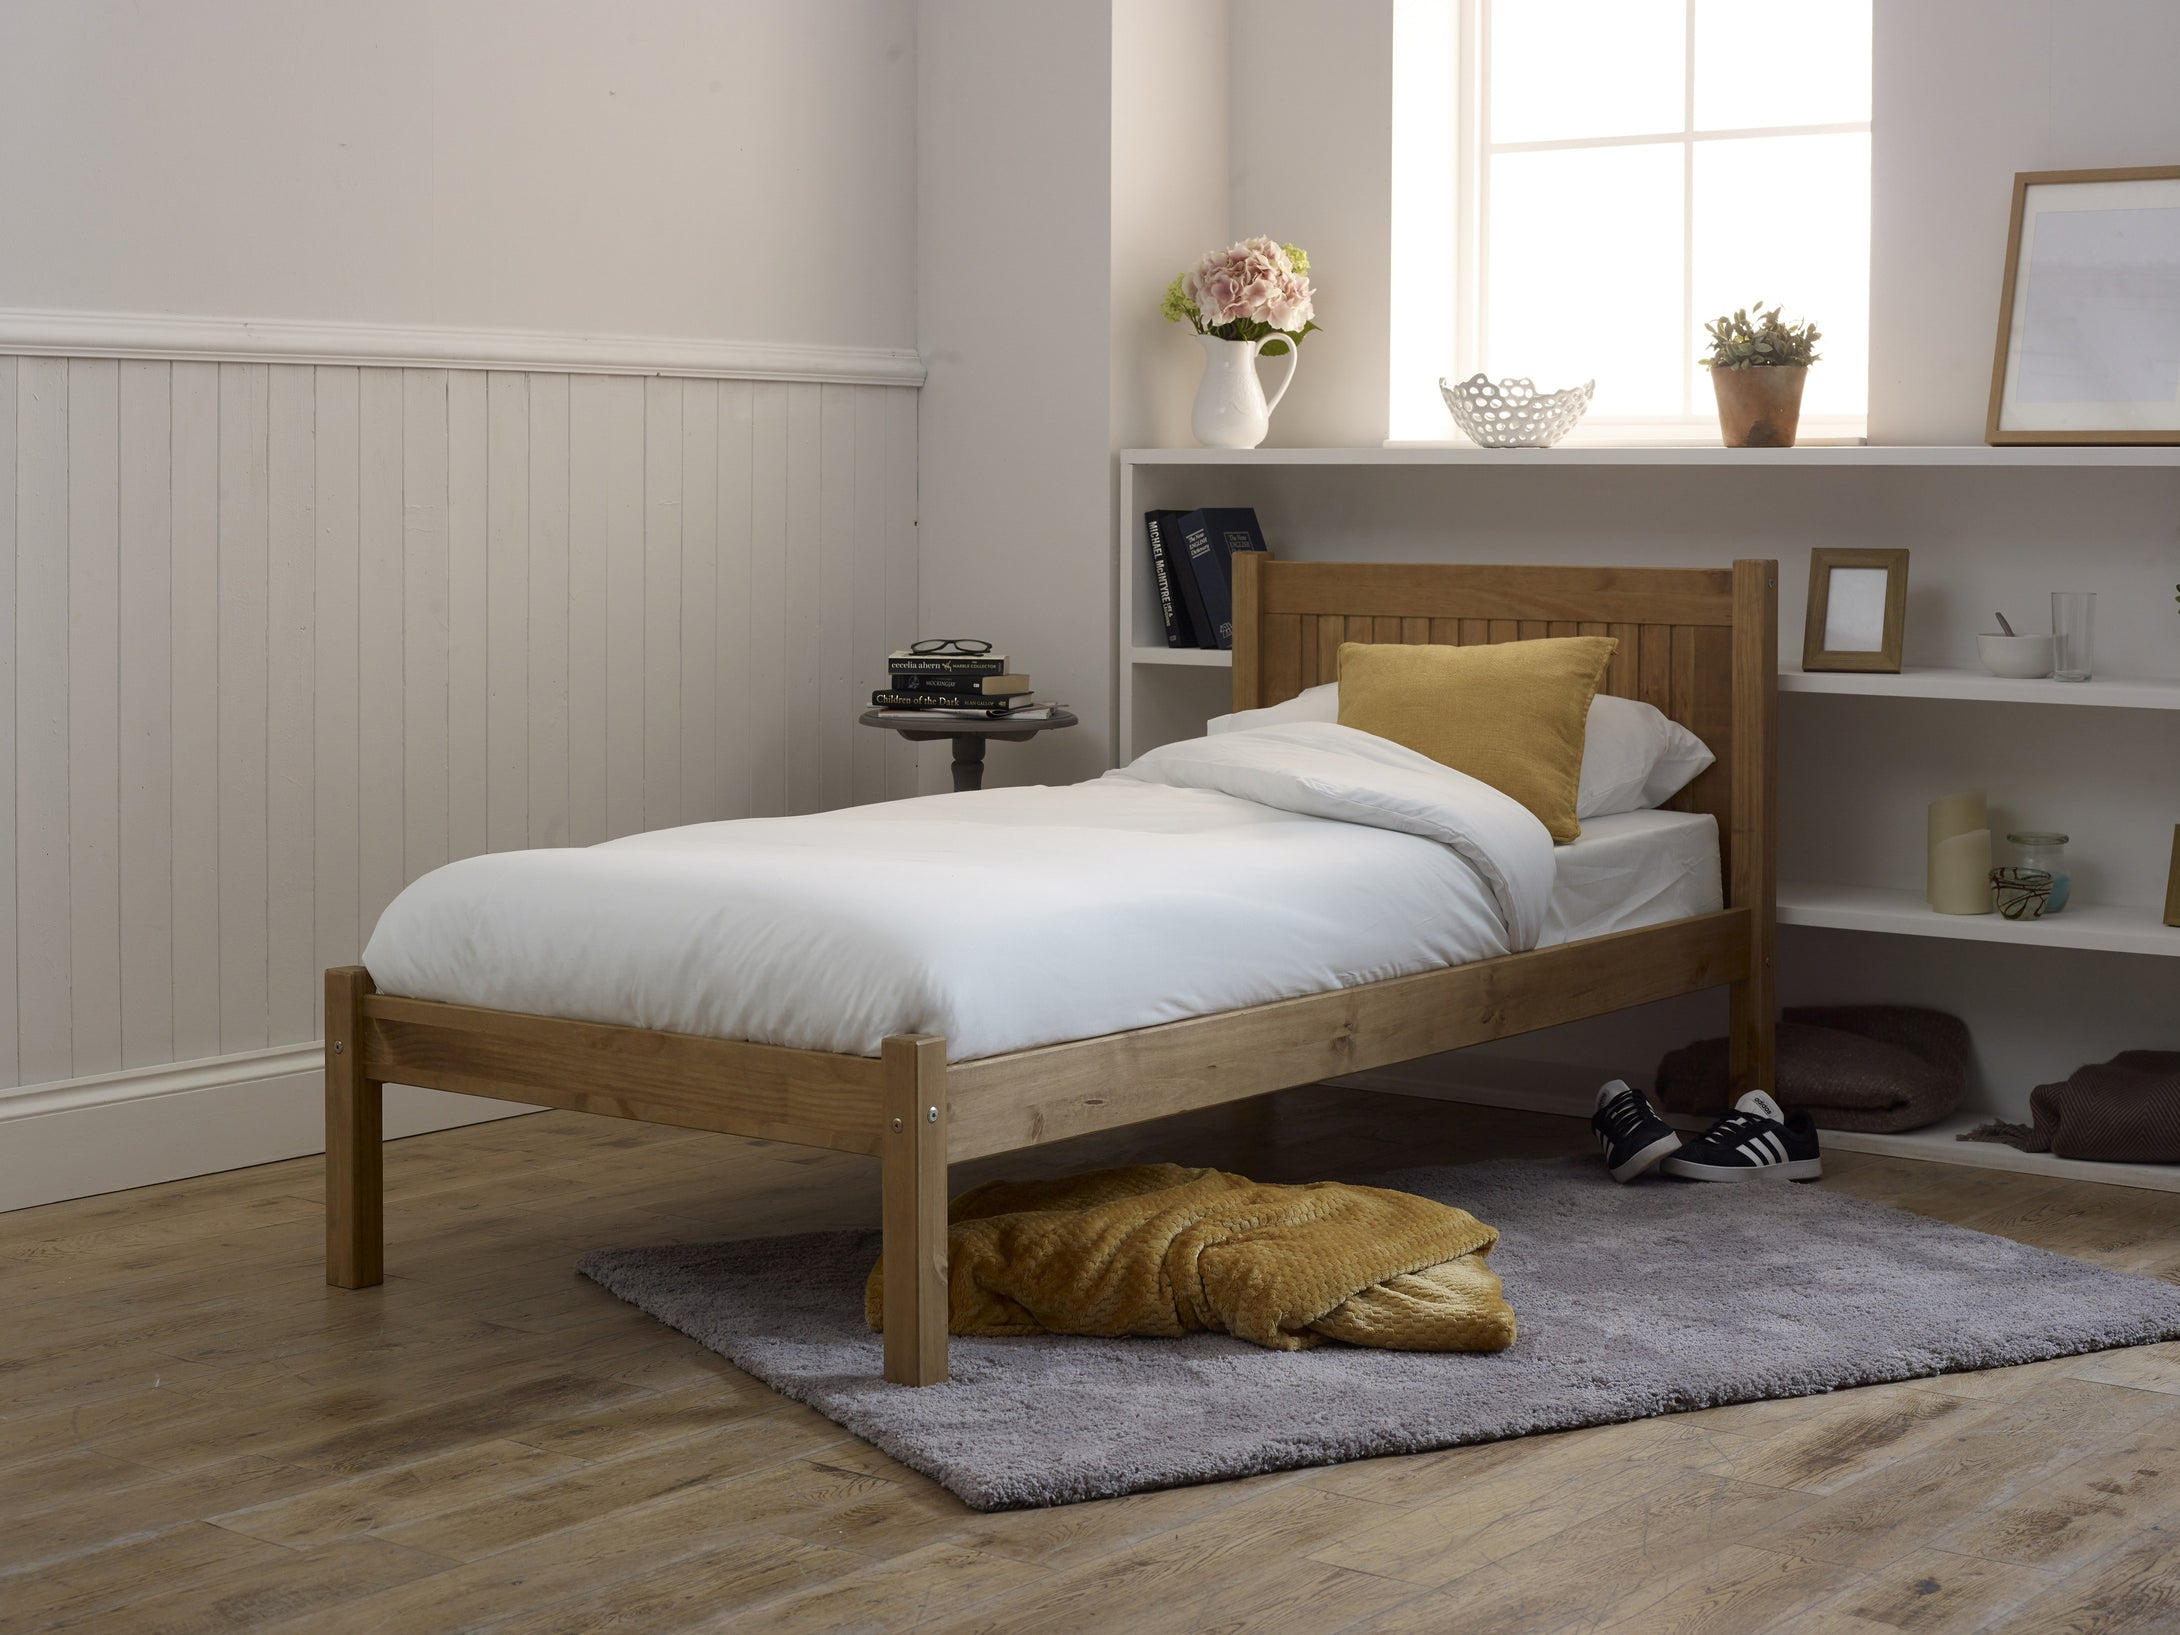 Small double wooden bed | Pine wooden three quarter bed frame